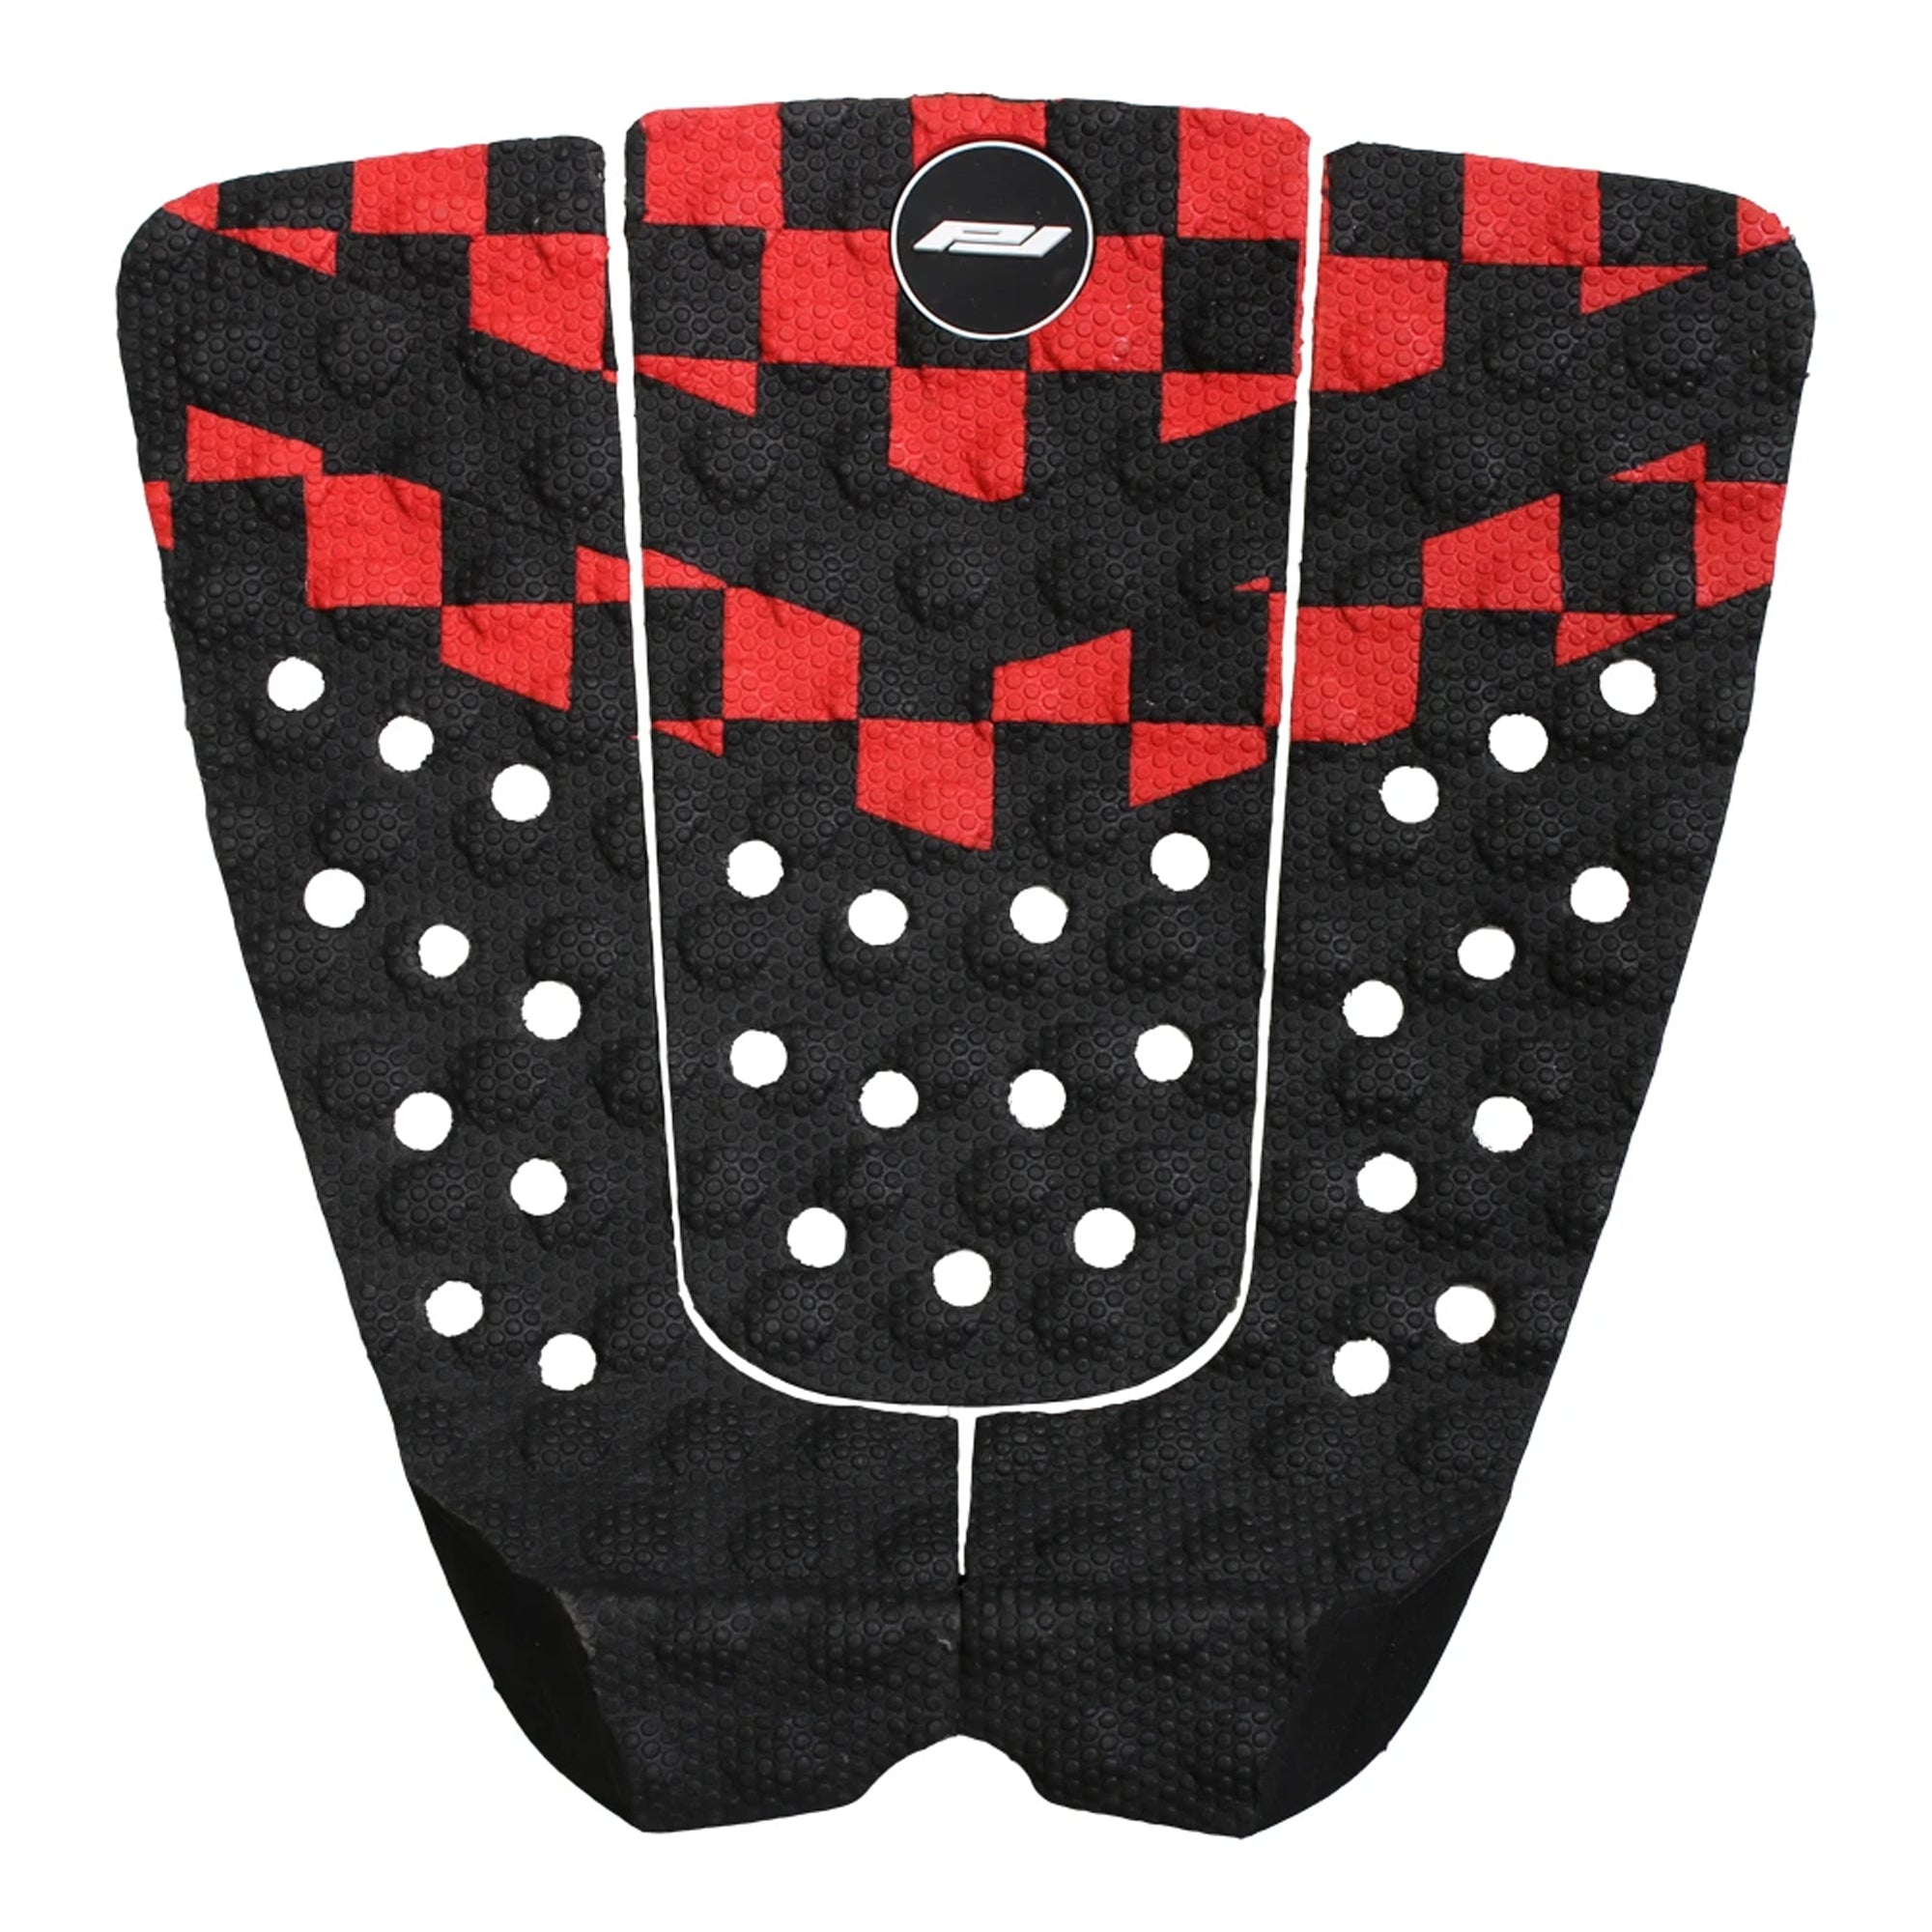 Pro-Lite Balaram Stack Flat Traction Pad - Red & Black Checkers